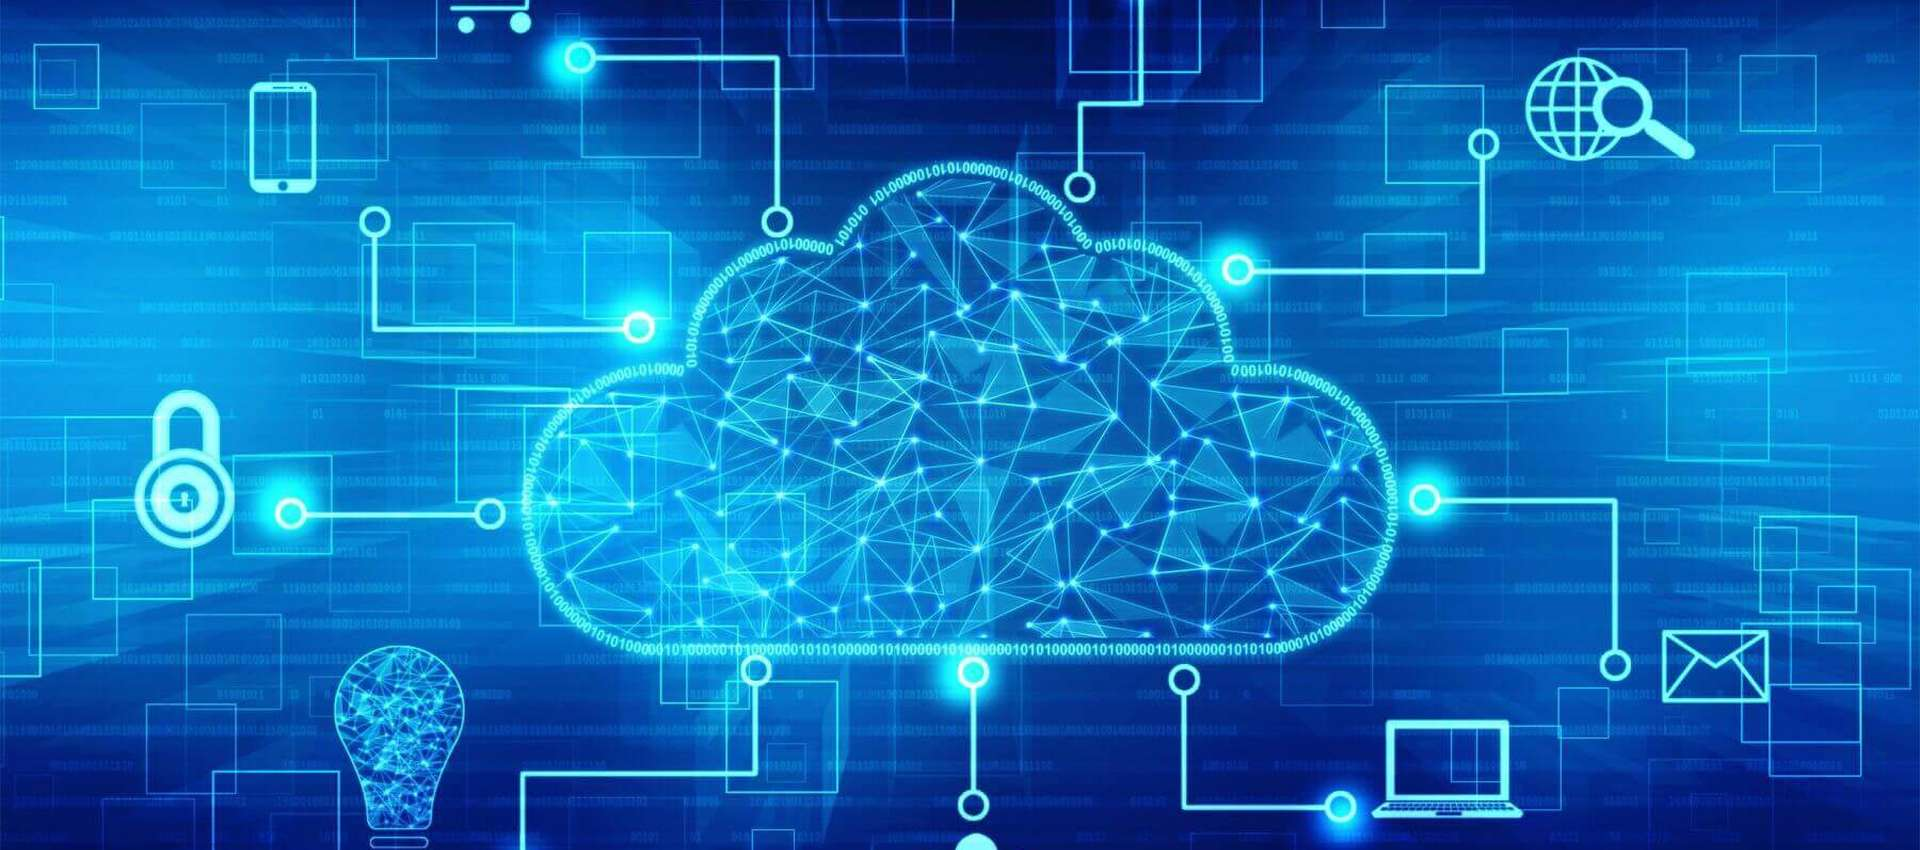 Cloud Computing Confusion? Here's a Quick Guide to the Cloud